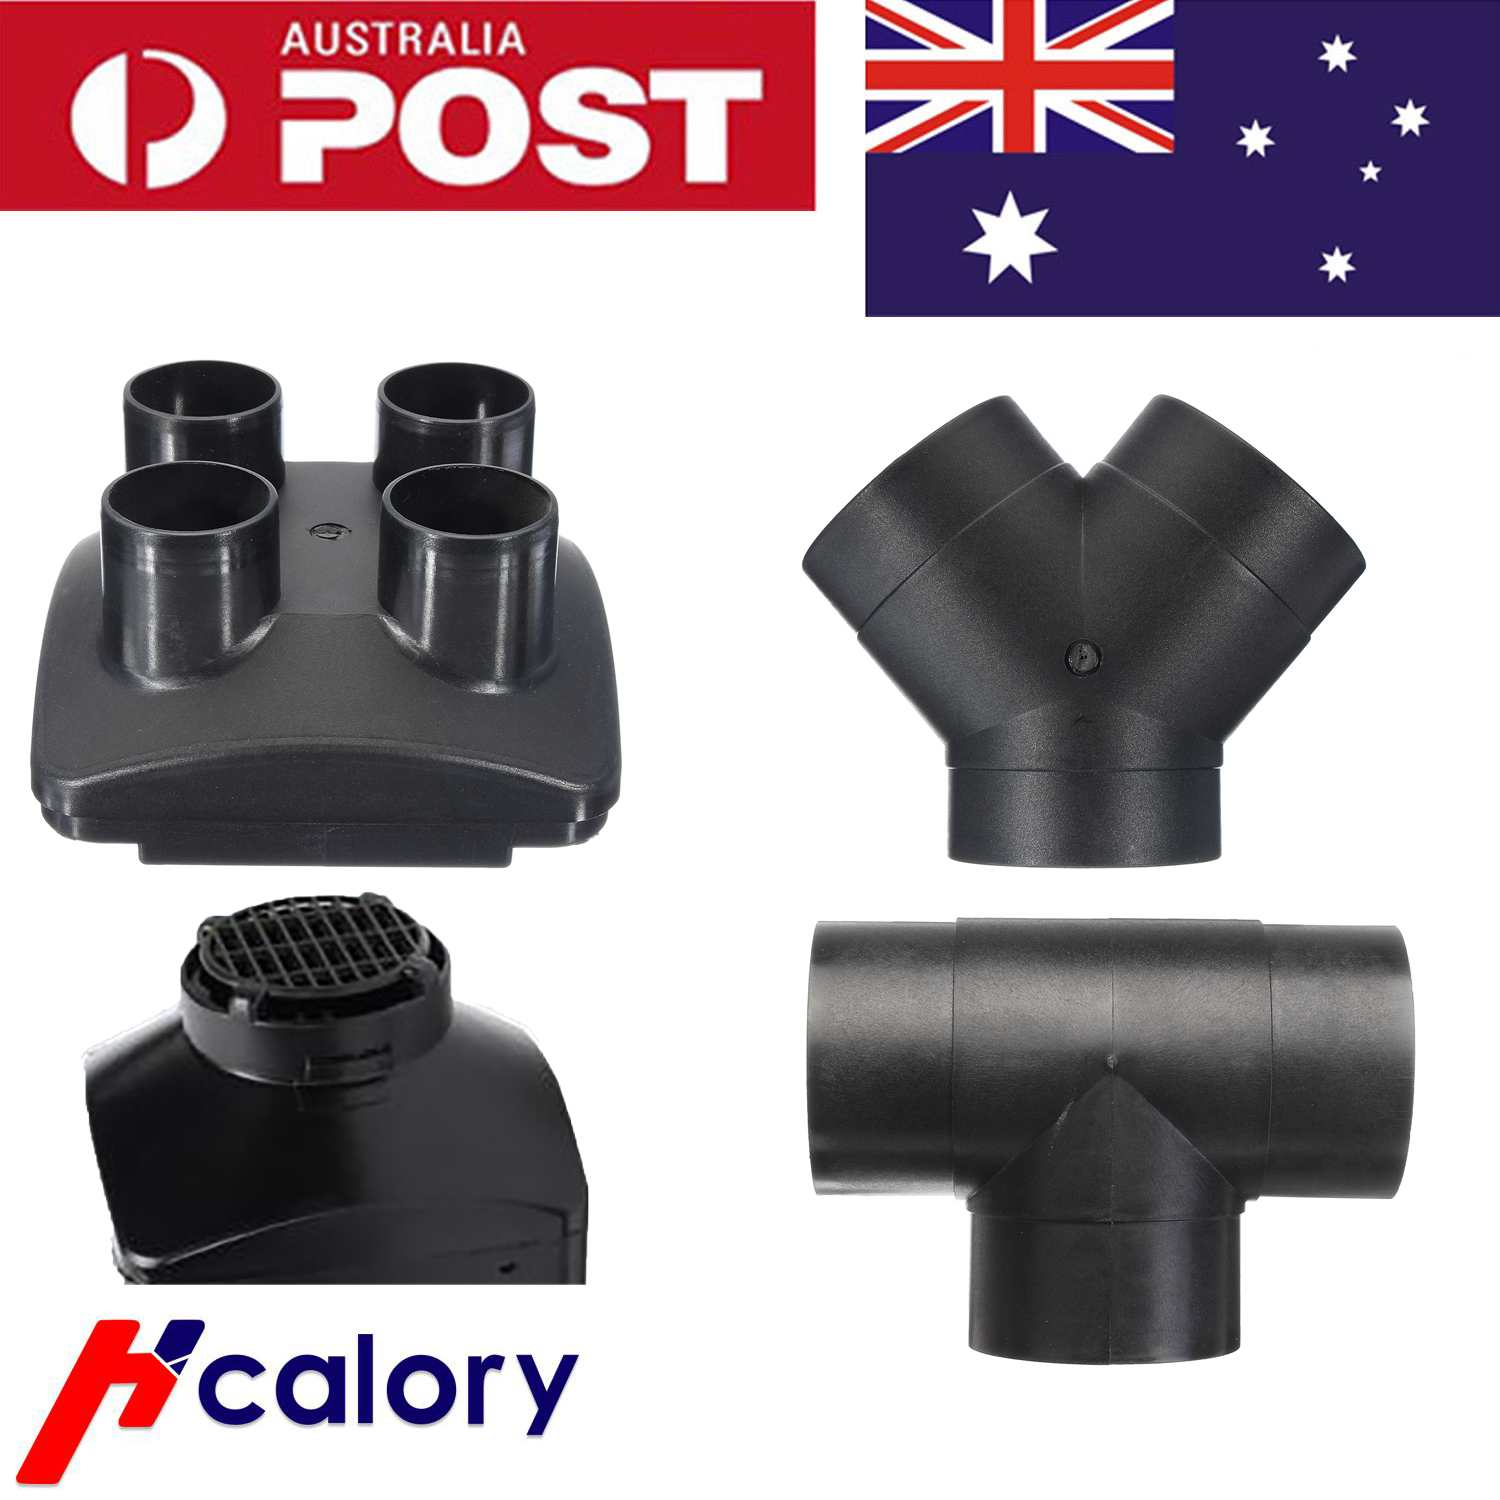 Diesel Air Heater Part Accessories Outlet Y-shaped T-shaped 4/2-Outlet For Auto Car For Car Air Heaters  Diesel Accessories Pipe